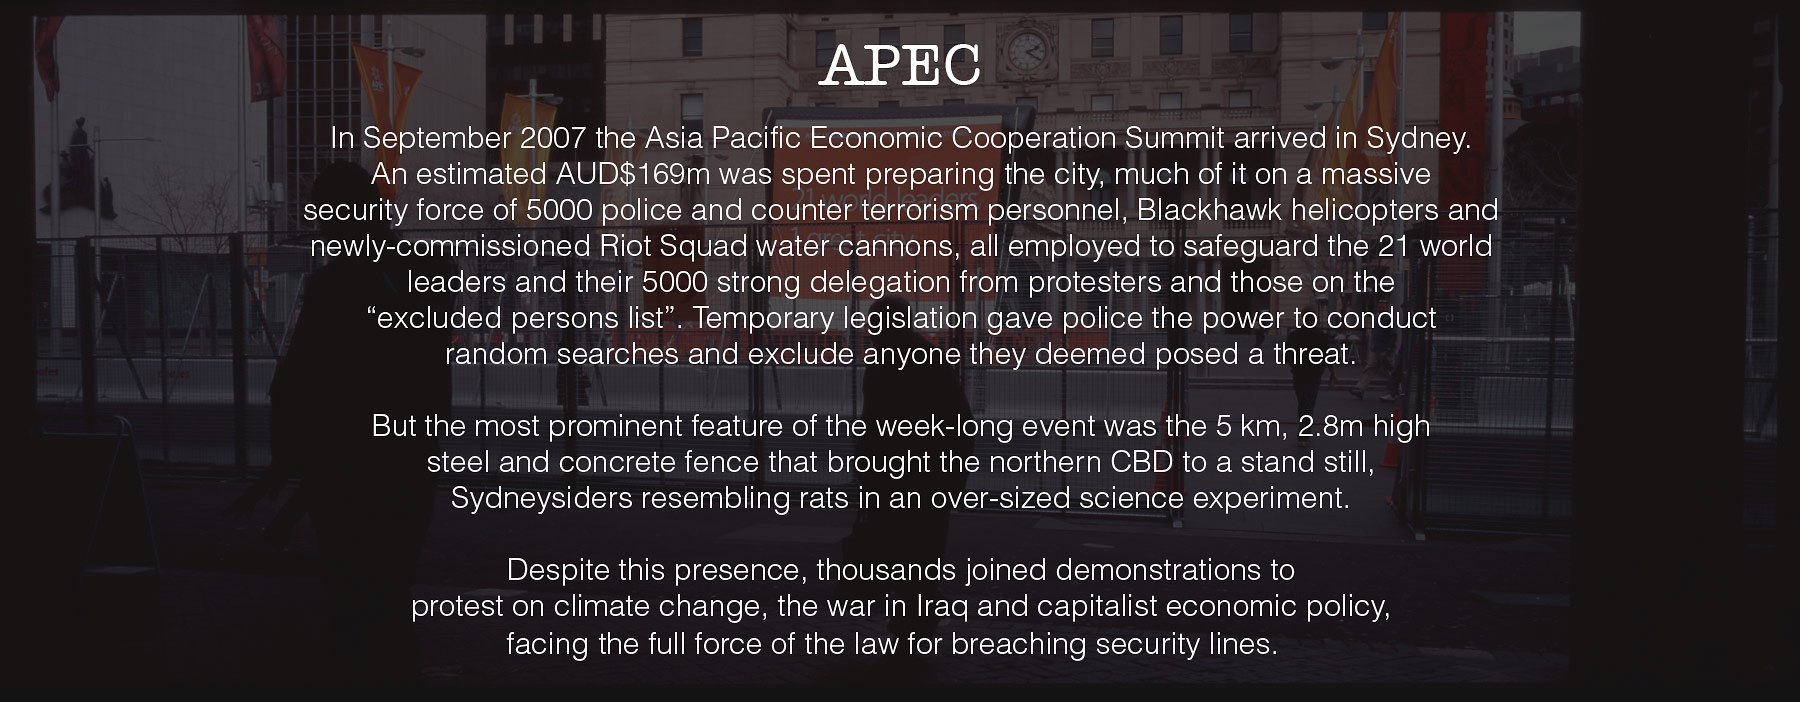 00-apec-title-AT-crop